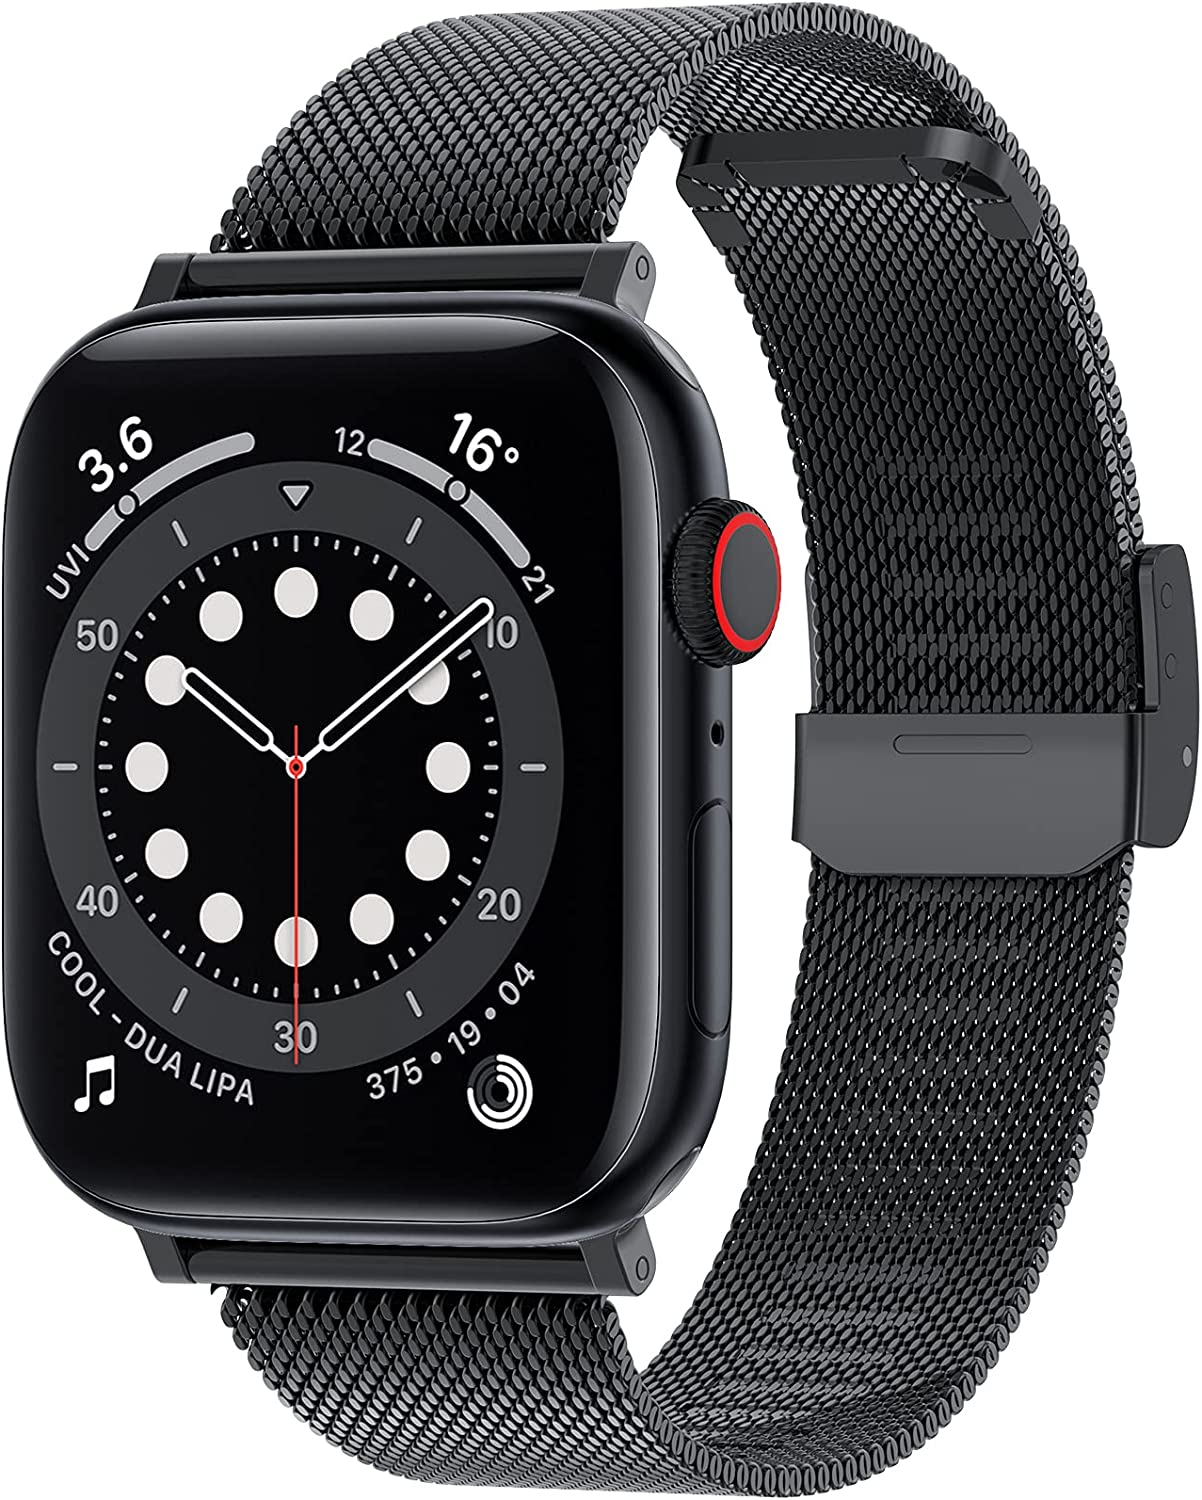 Goton Stainless Steel Band Compatible with Apple Watch Band 38mm 40mm 42mm 44mm, Lightweight Thin Mesh Metal Loop Replacement Strap for iWatch SE & Series 6/5/4/3/2/1 Men Women